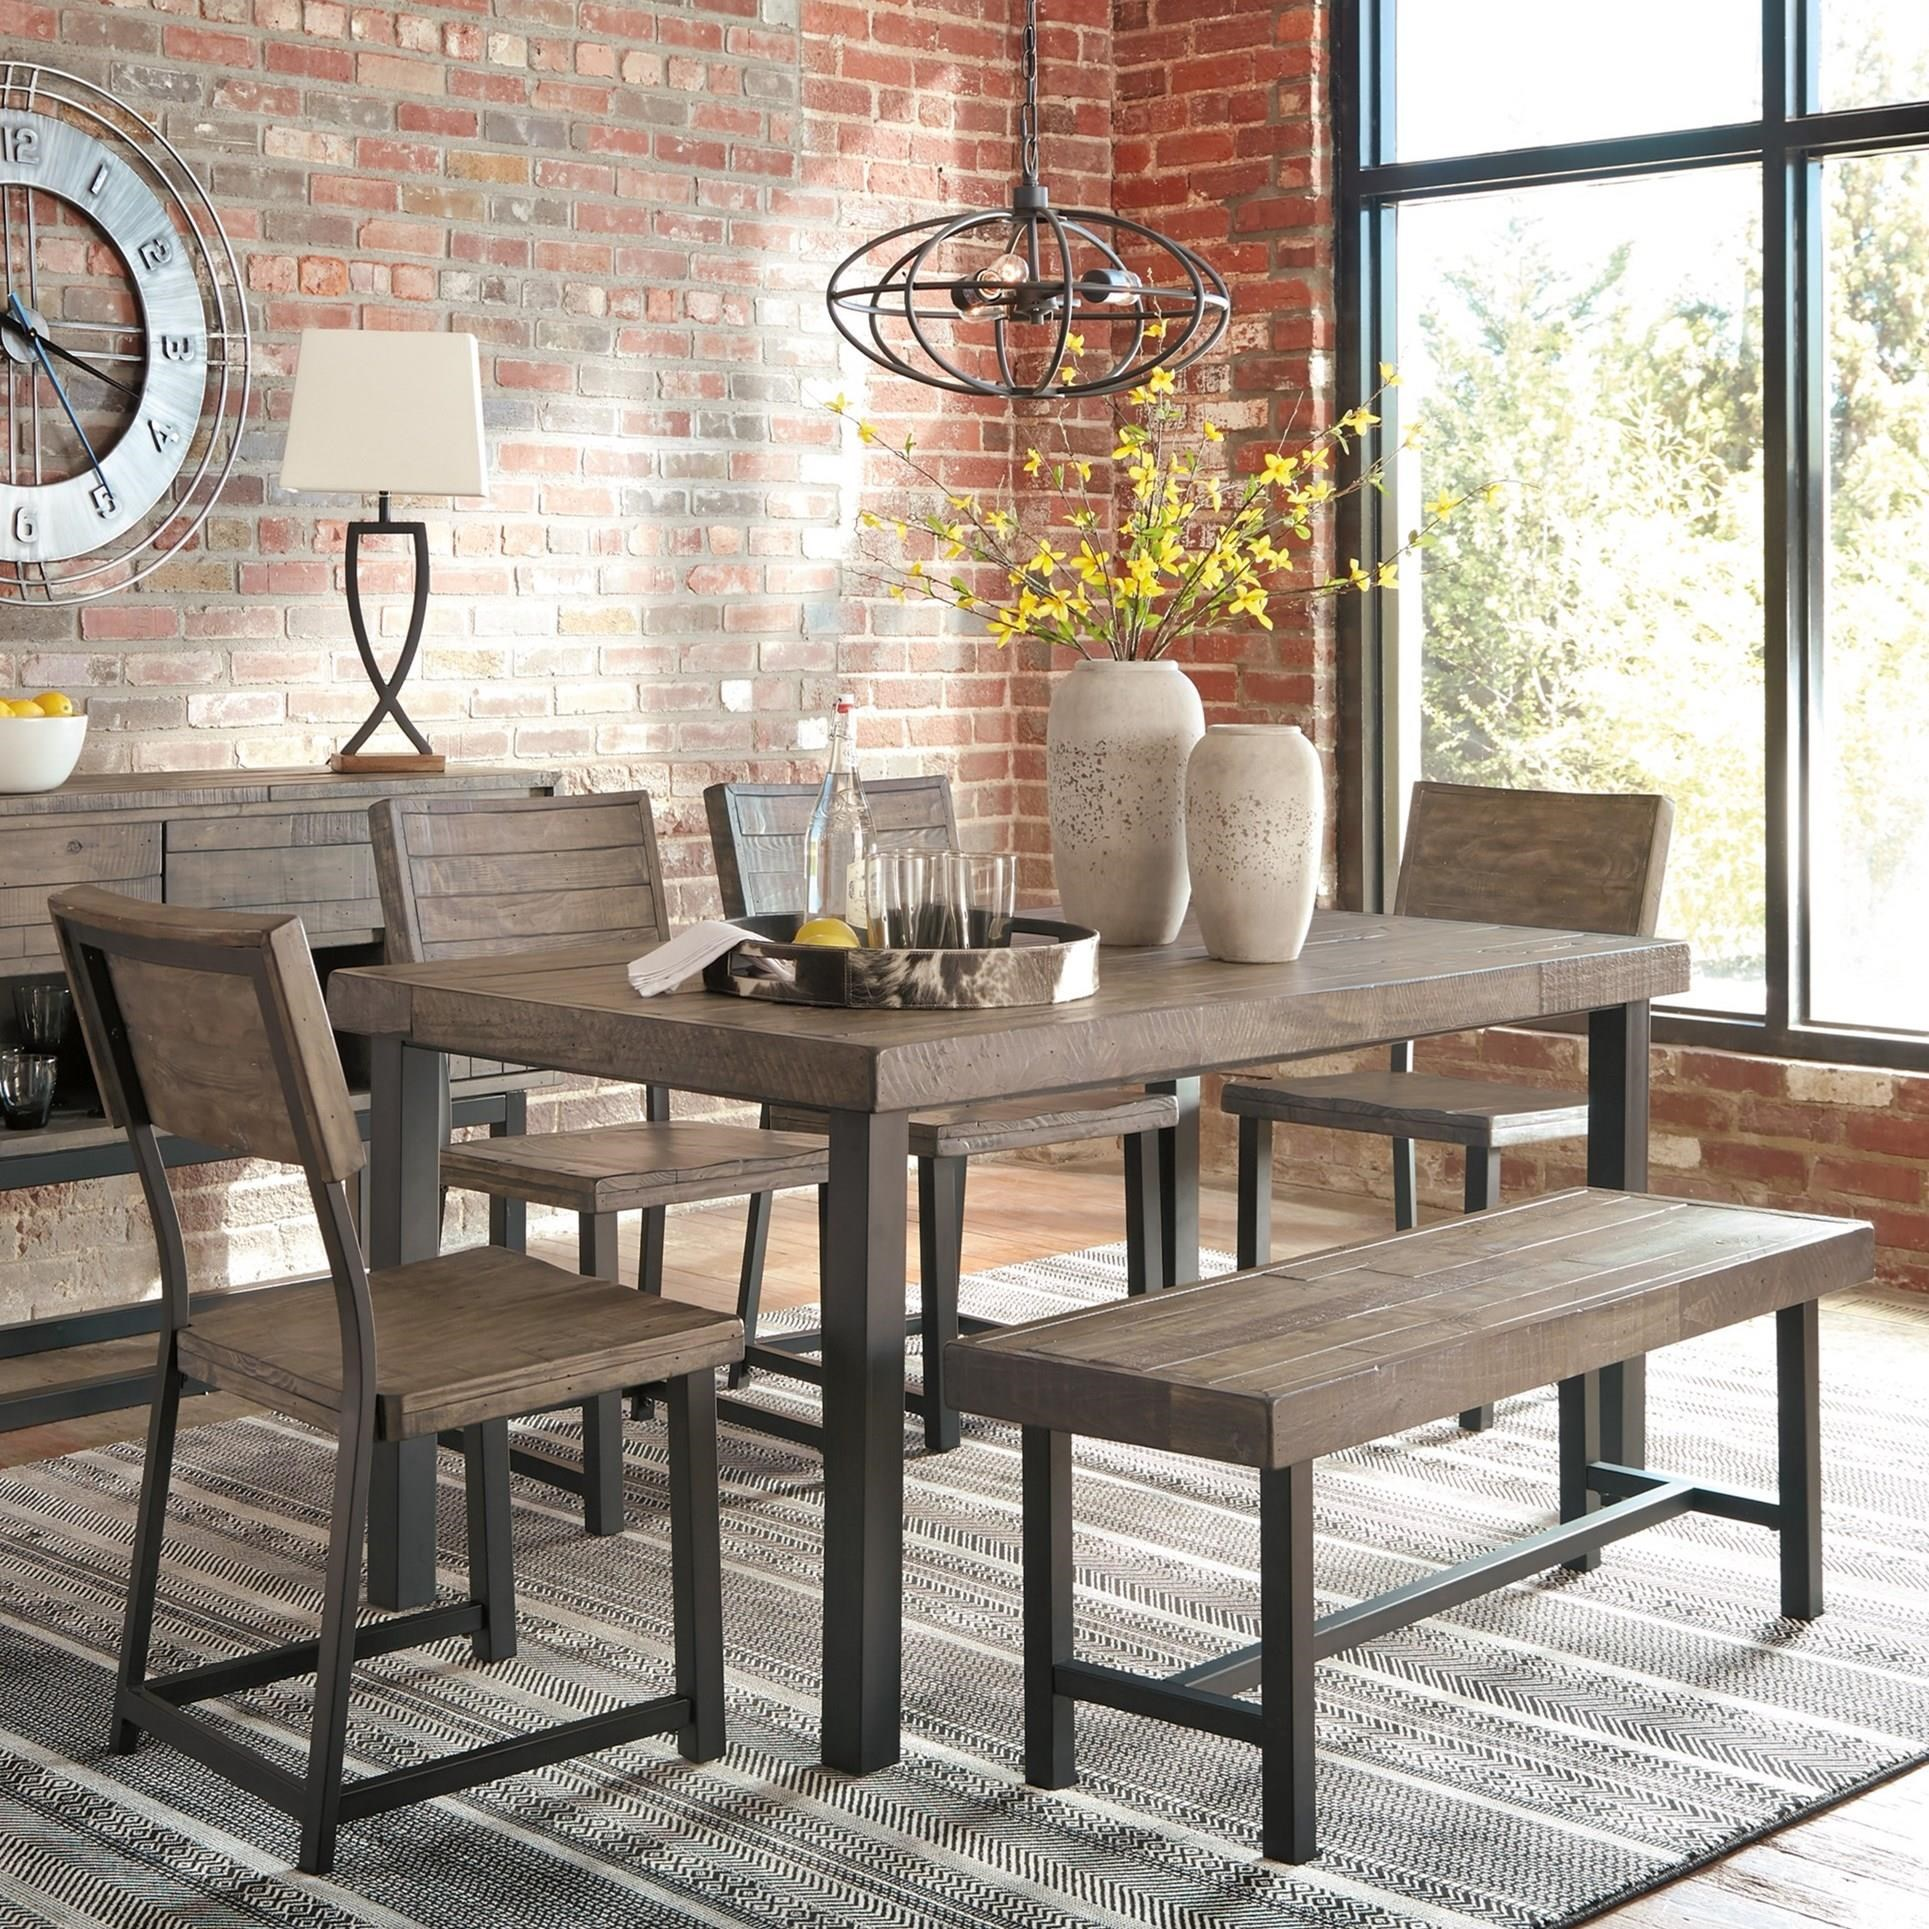 Cazentine 6-Piece Table Set with Bench by Signature Design by Ashley at Lapeer Furniture & Mattress Center